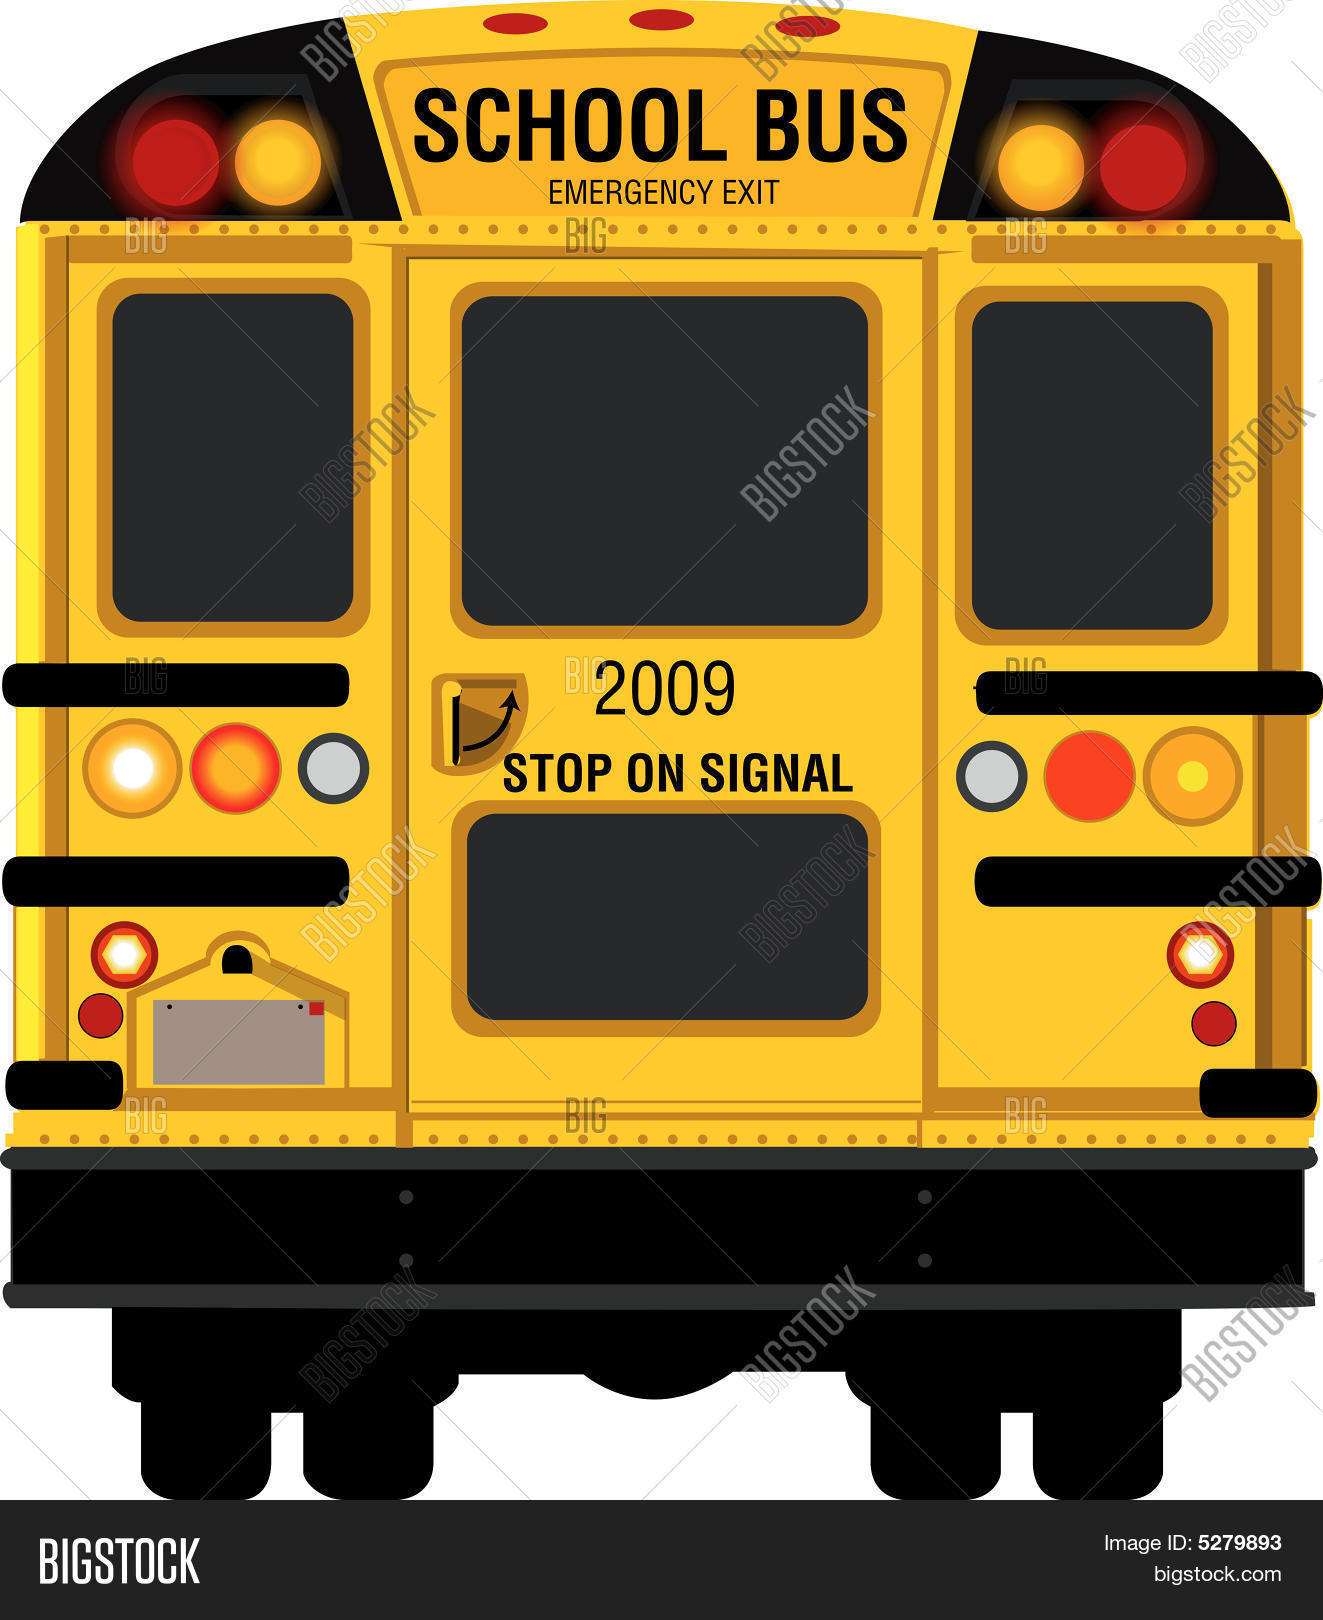 Schoolbus Stock Vector & Stock Photos | Bigstock